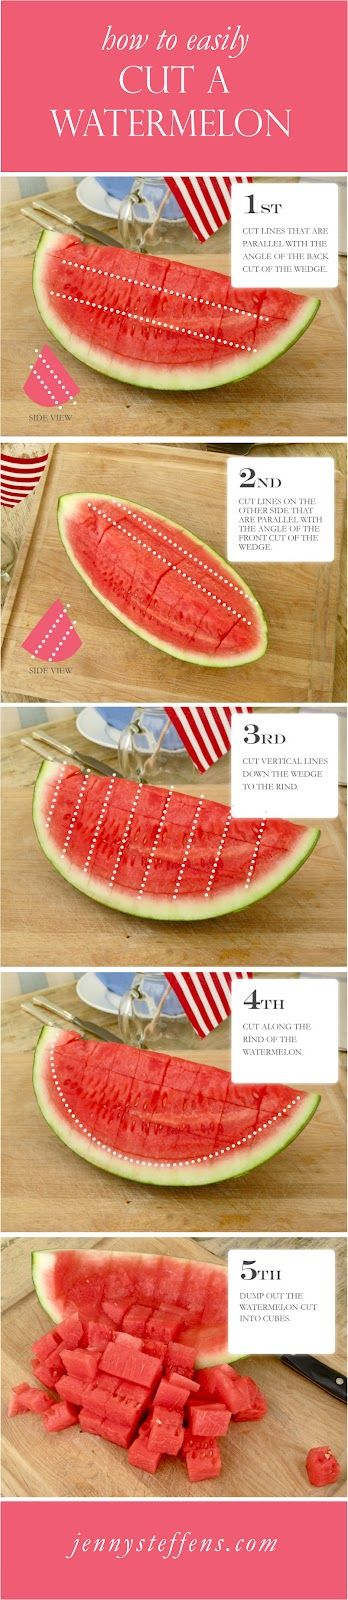 Super quick and easy way to cut a watermelon without a mess. Where was this when I butchered a watermelon several weeks ago?